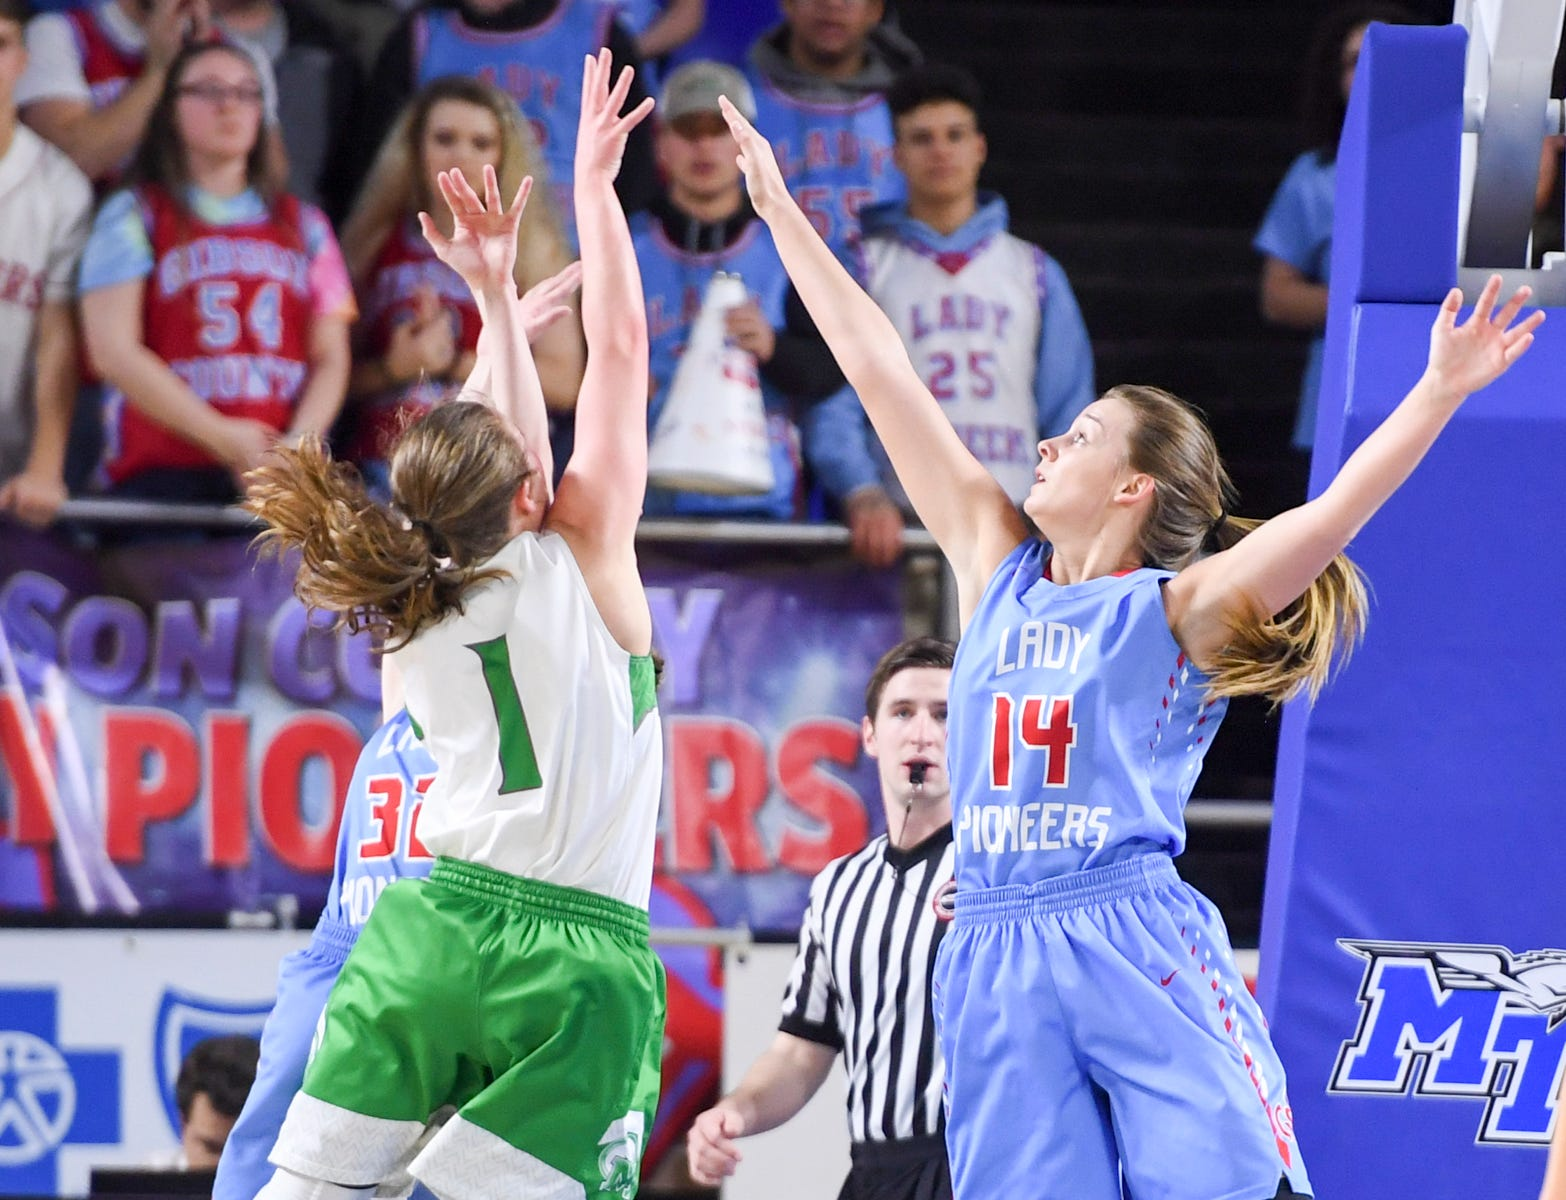 Gibson County's Alaina Hunt (14) reaches up in attempt to block the shot of Midway's Caitlyn Ross (1) during their Class A semifinal game, Friday, March 8, 2019, in  Murfreesboro.